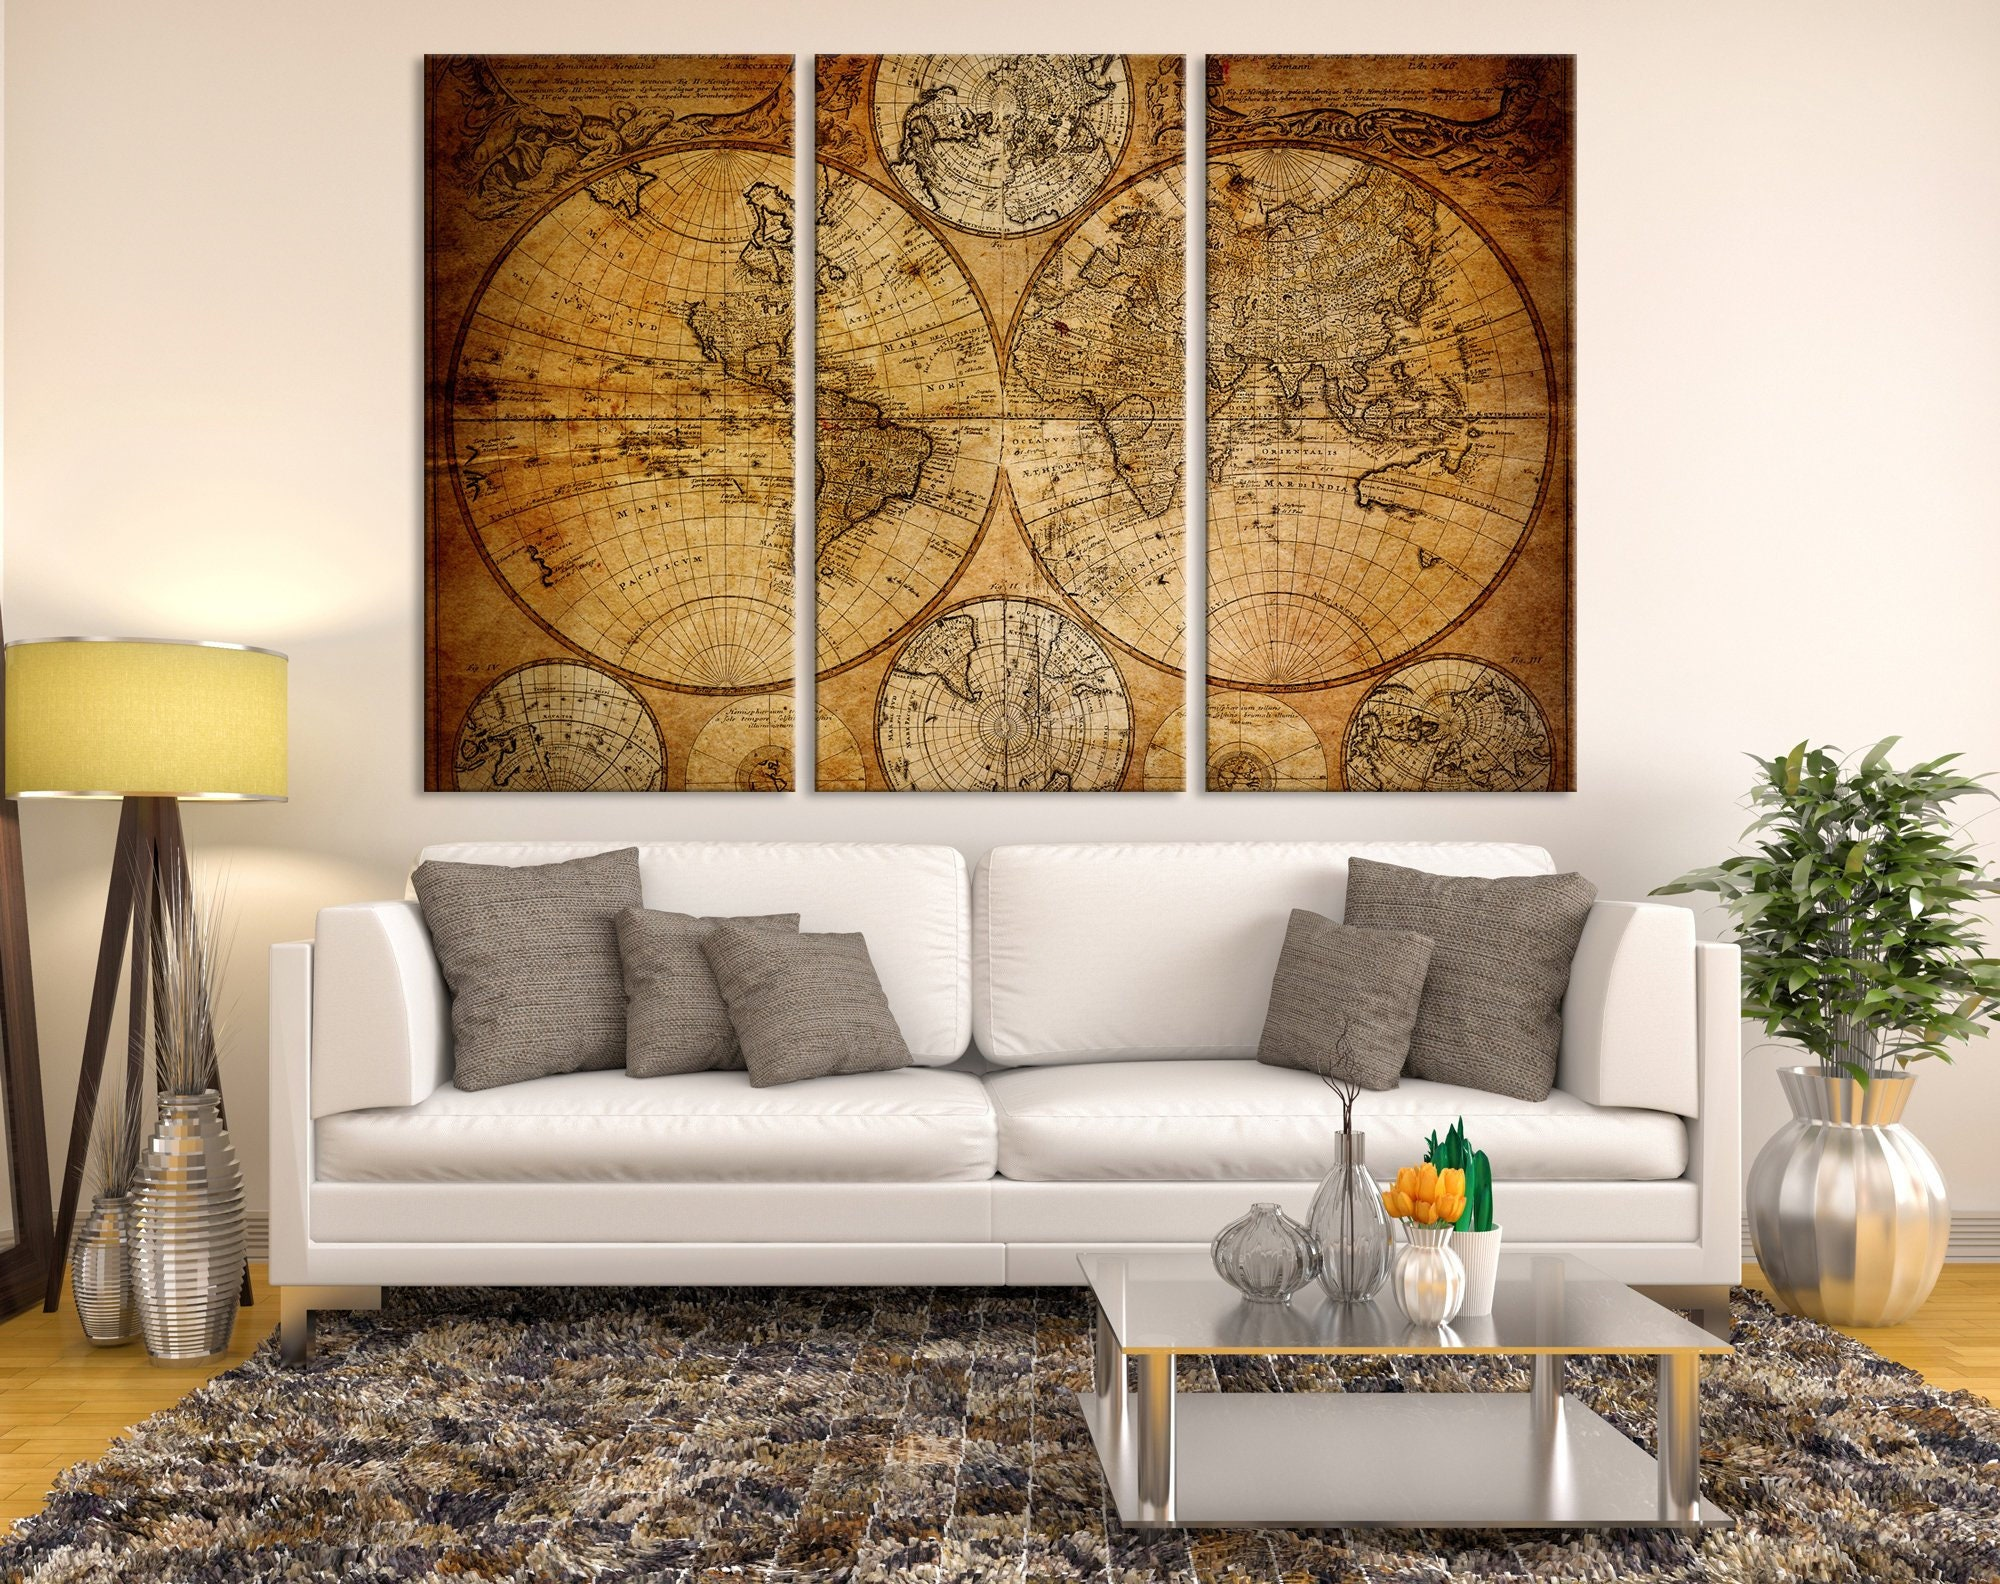 Old World Map Canvas.Large Wall Art World Map Canvas Print Old World Map Travel Etsy